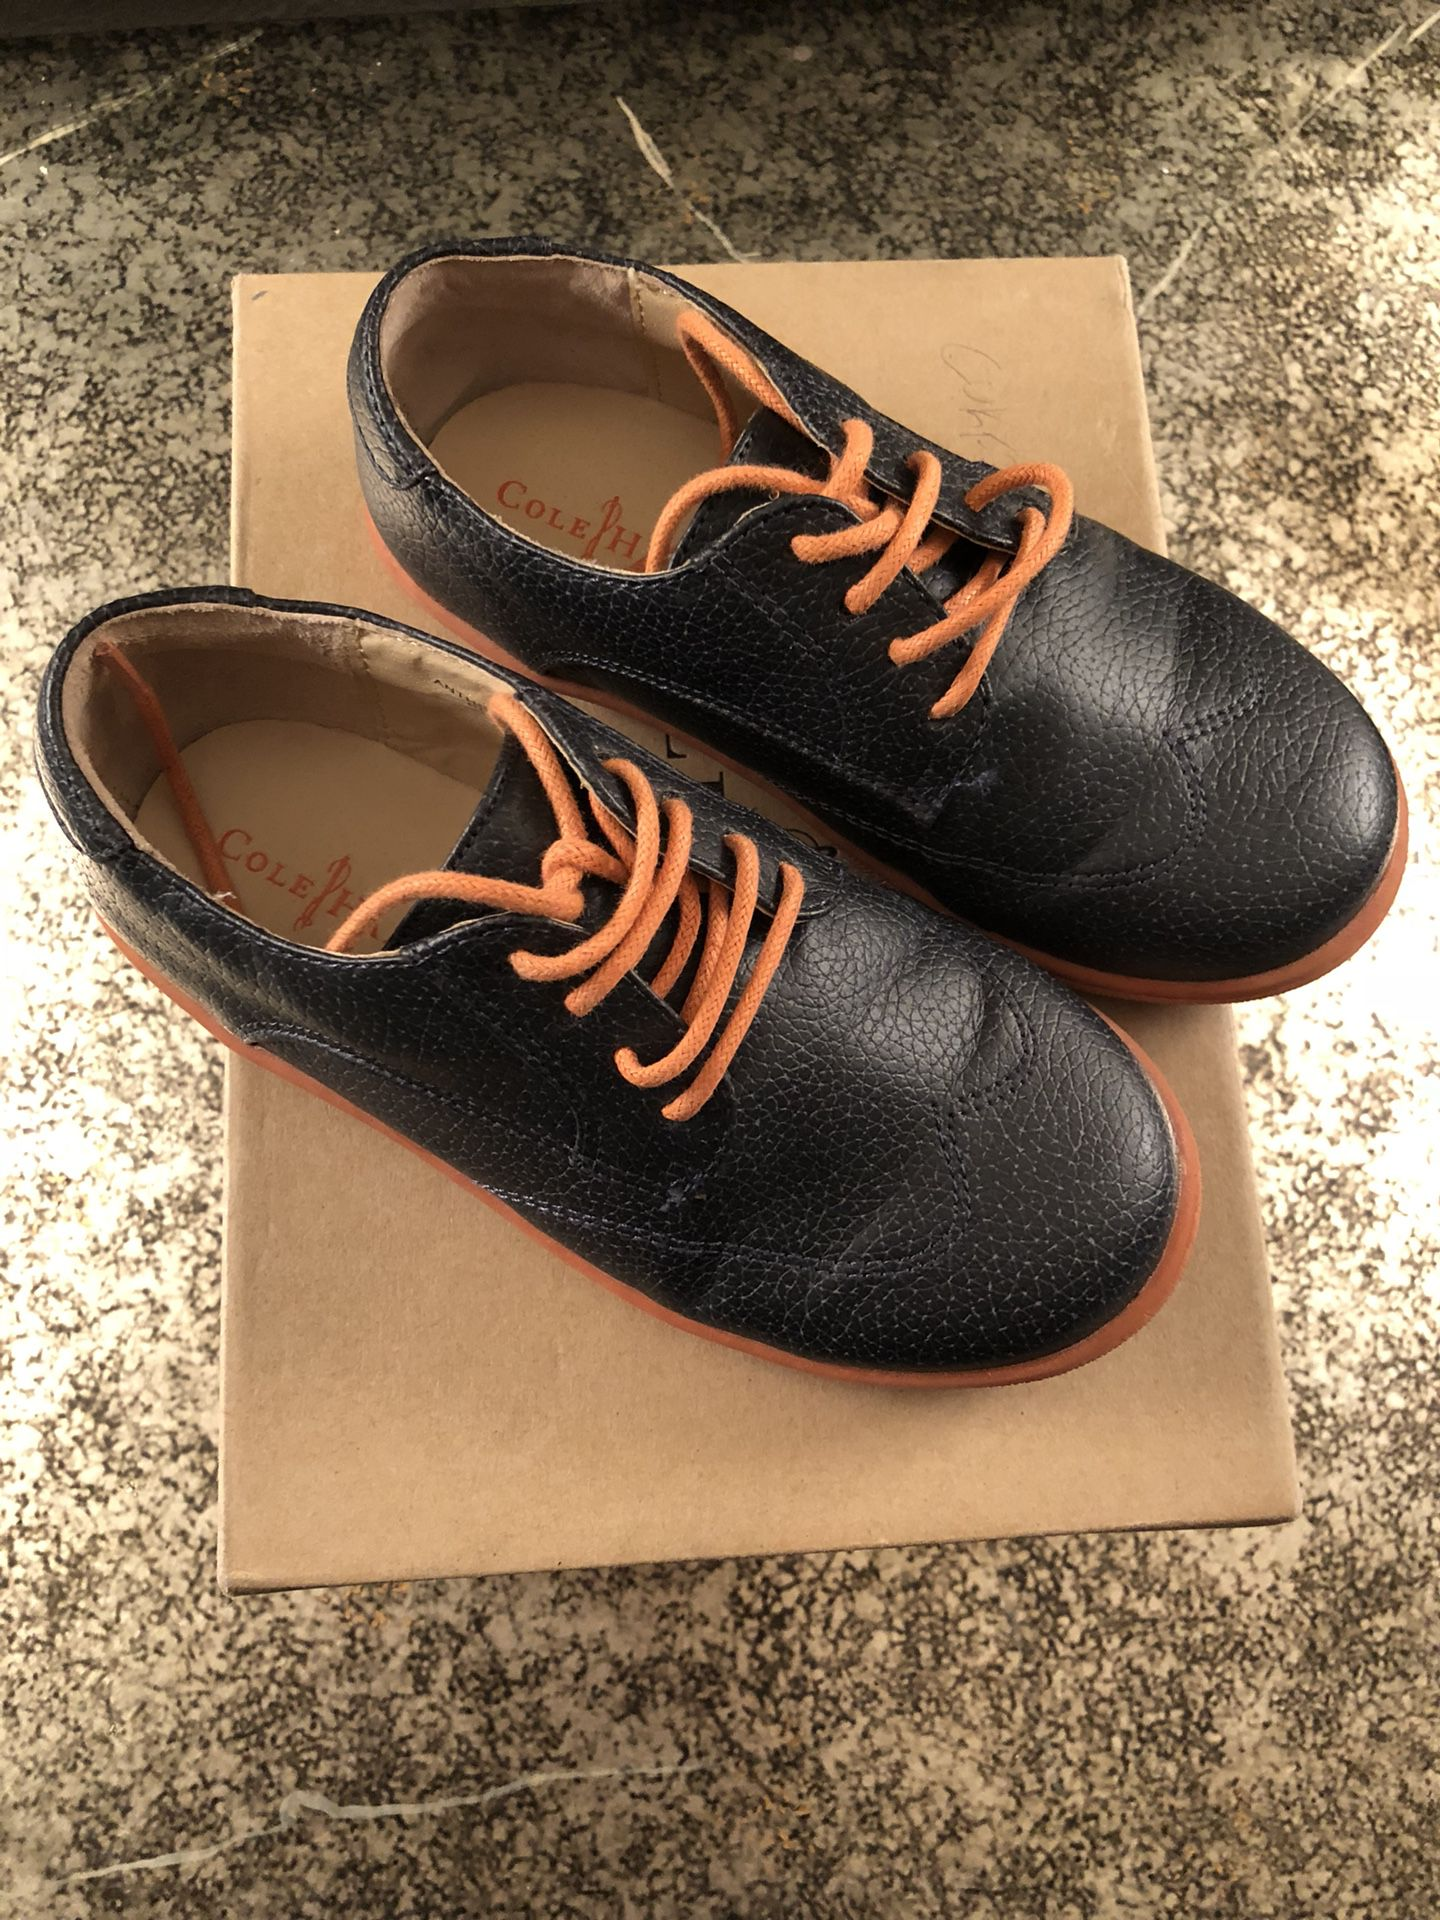 Boys Cole Haan Shoes toddler size 10